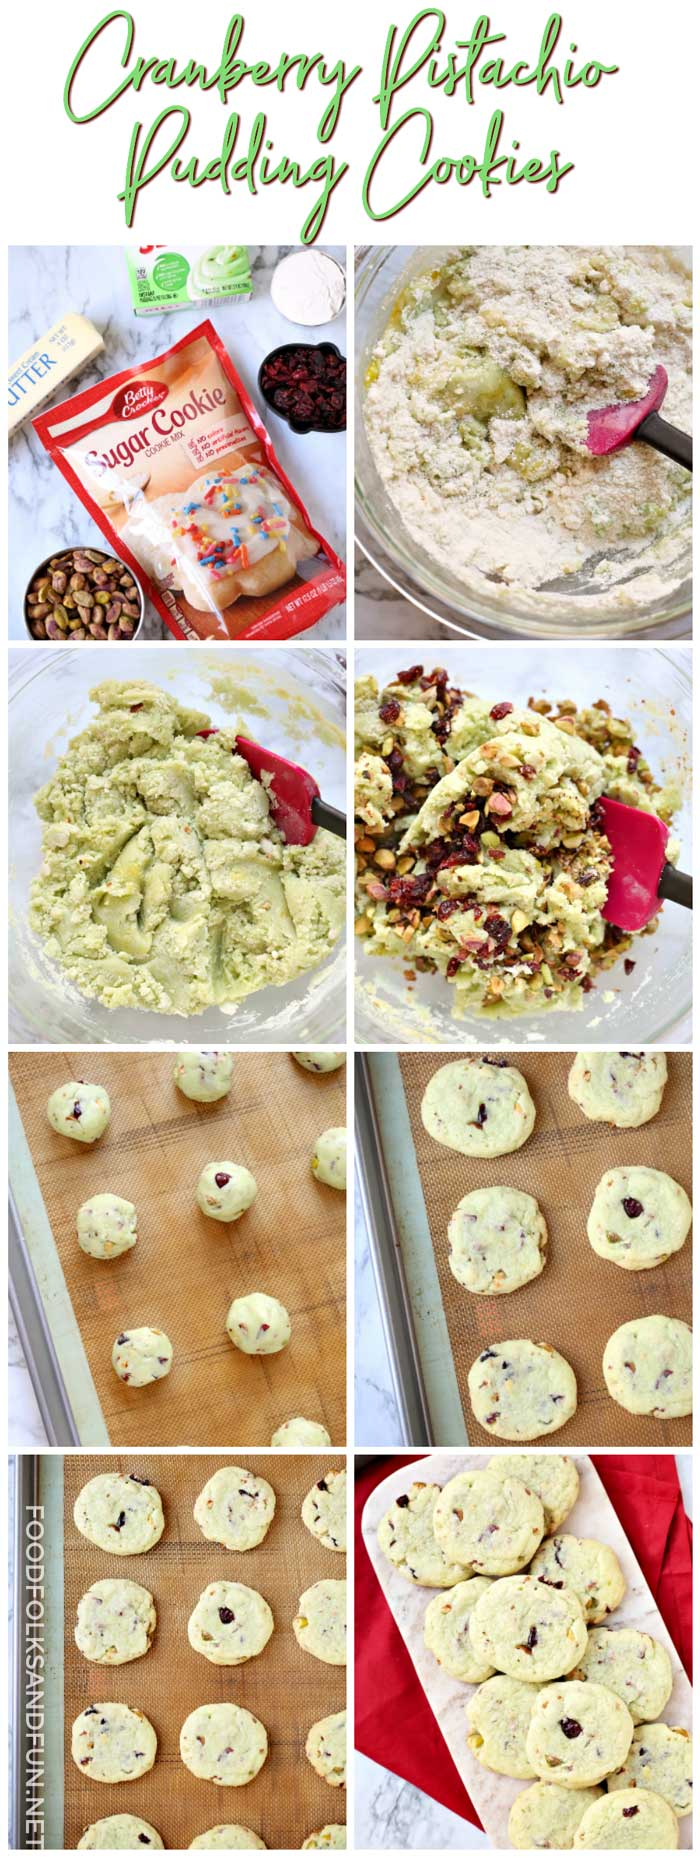 Picture collage of how to make pistachio cookies